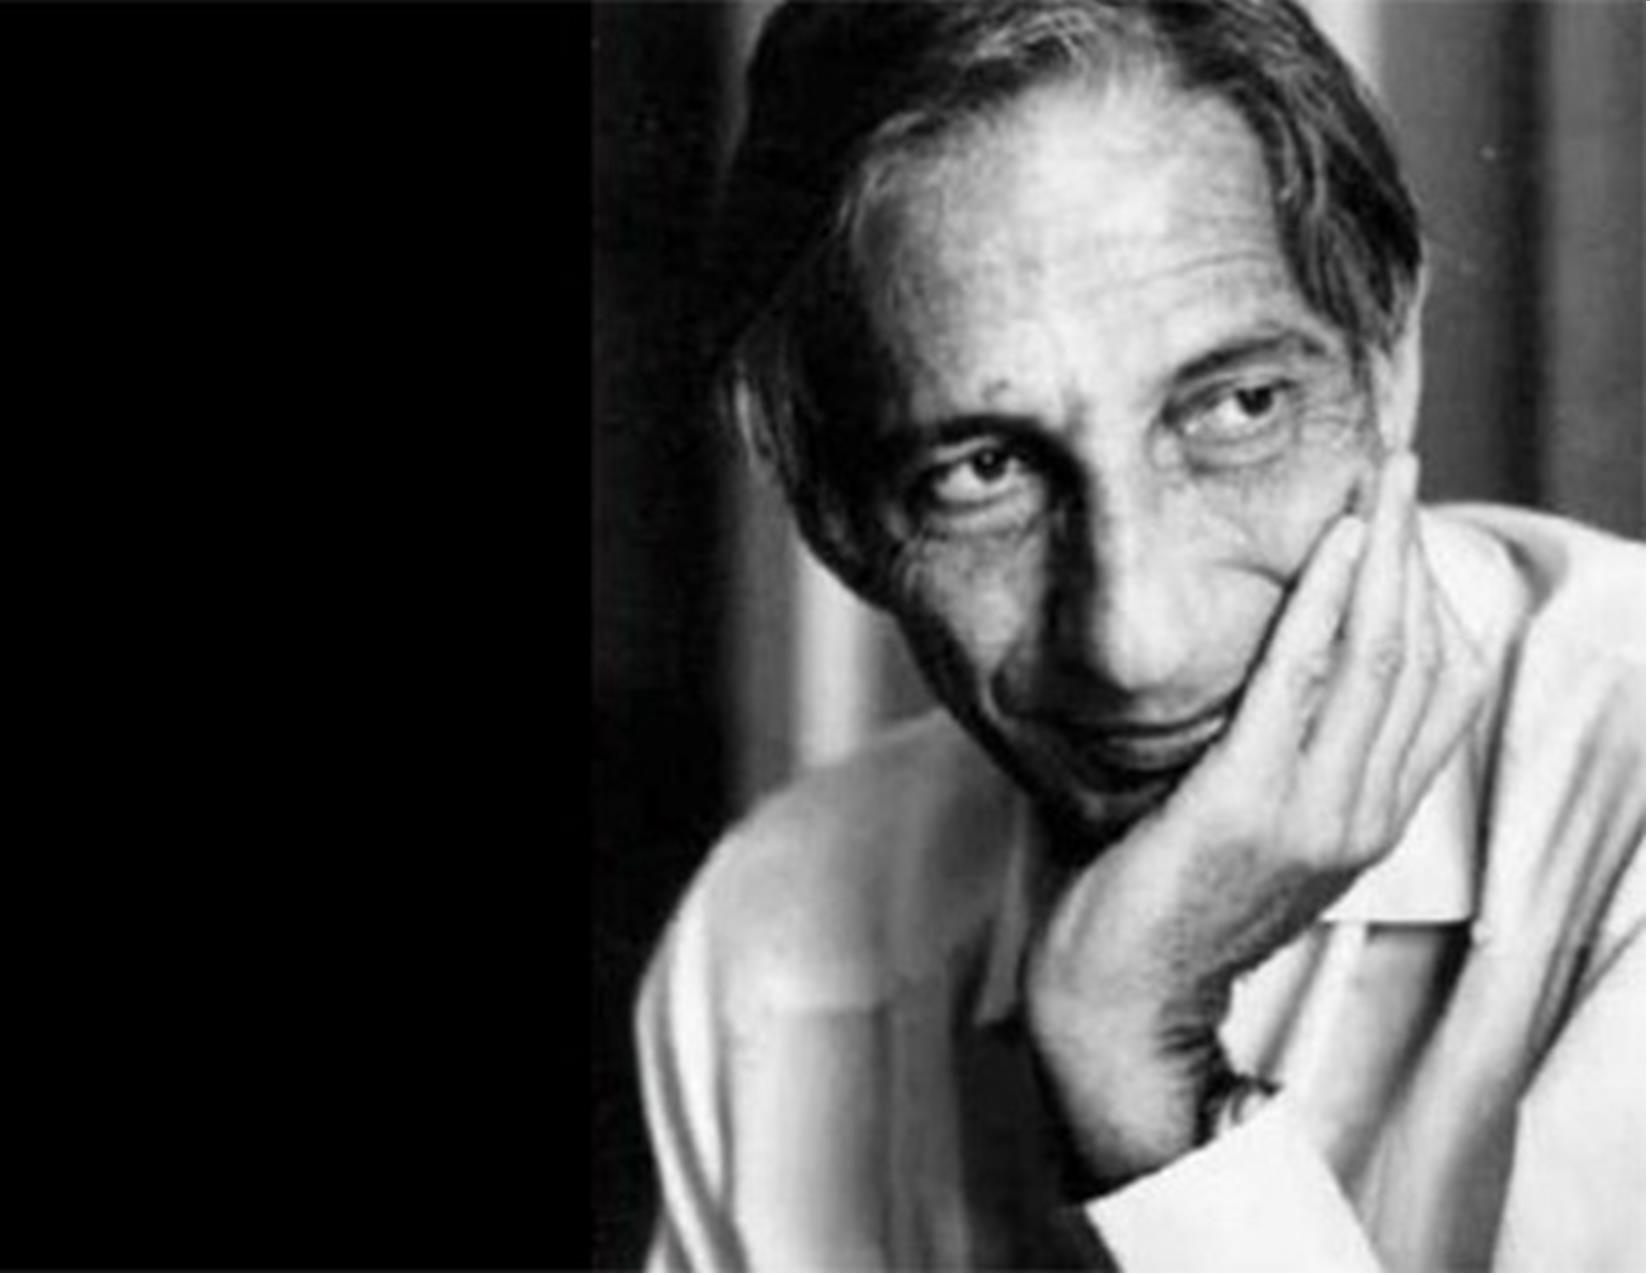 Ivan Illich: seeing beyond barriers and rigid structures